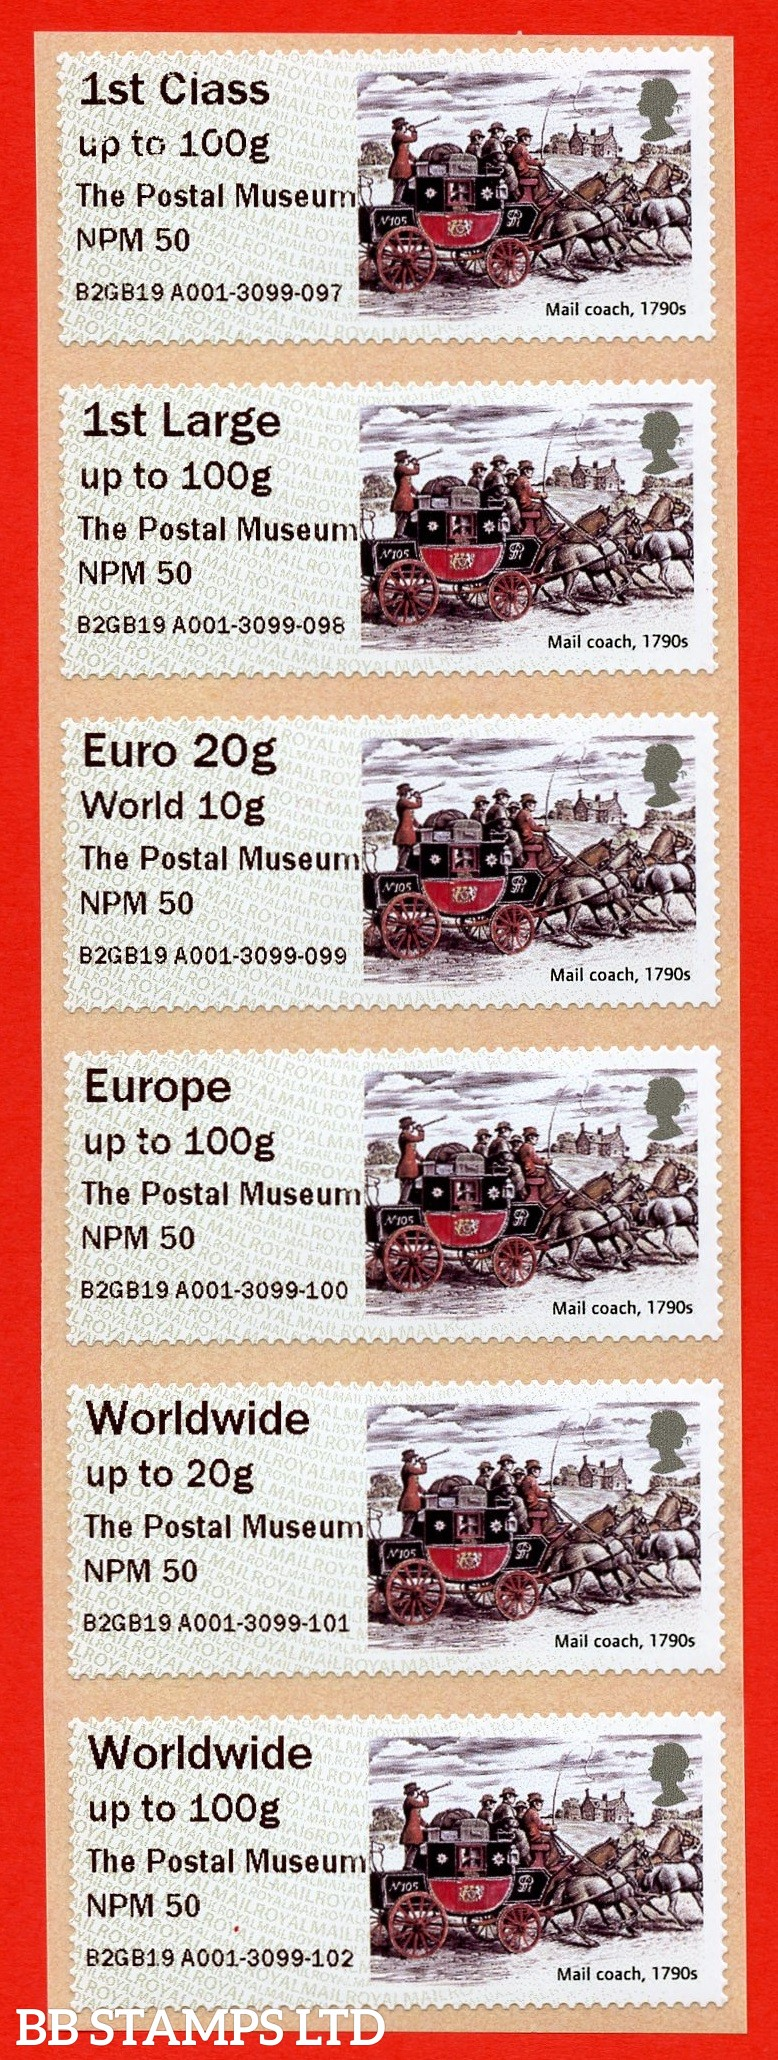 2019 Royal Mail Heritage Mailcoach The Postal Museum NPM 50 -(Set of 6) 1st - W/Wide 100g Type IIIA (BK28,P10)